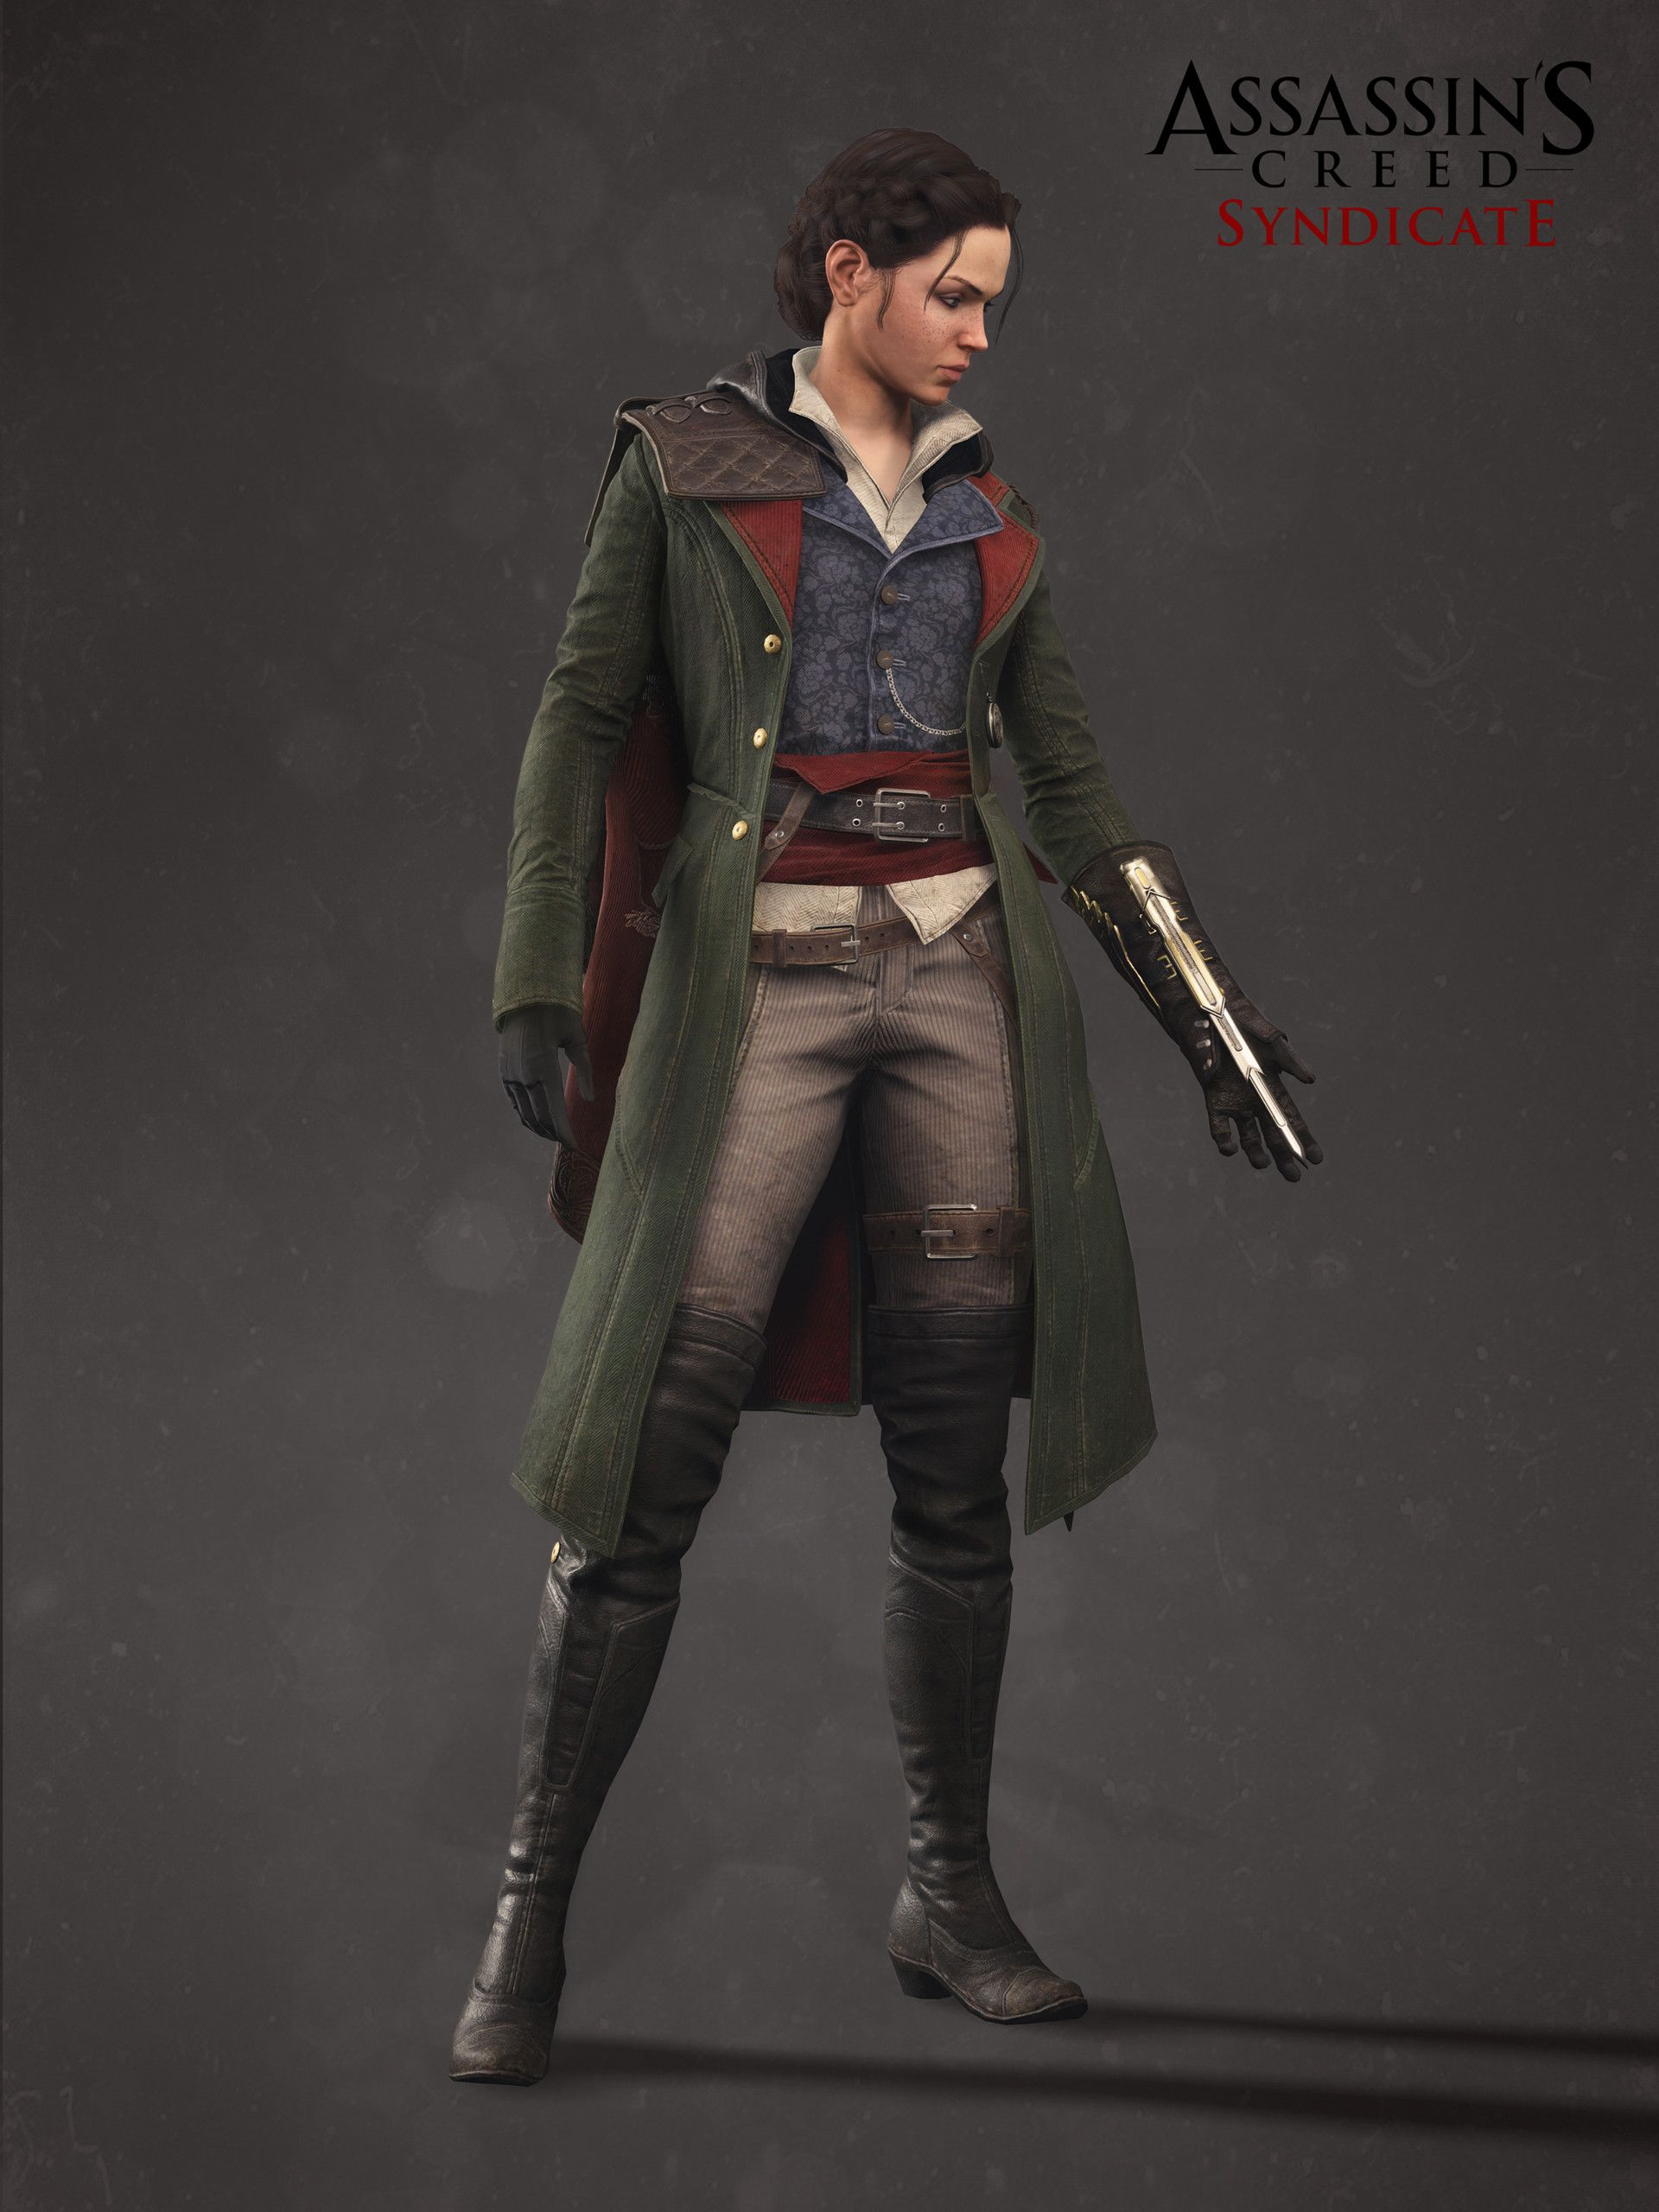 Assassin S Creed Syndicate Is As Assassin S Creed Games Usually